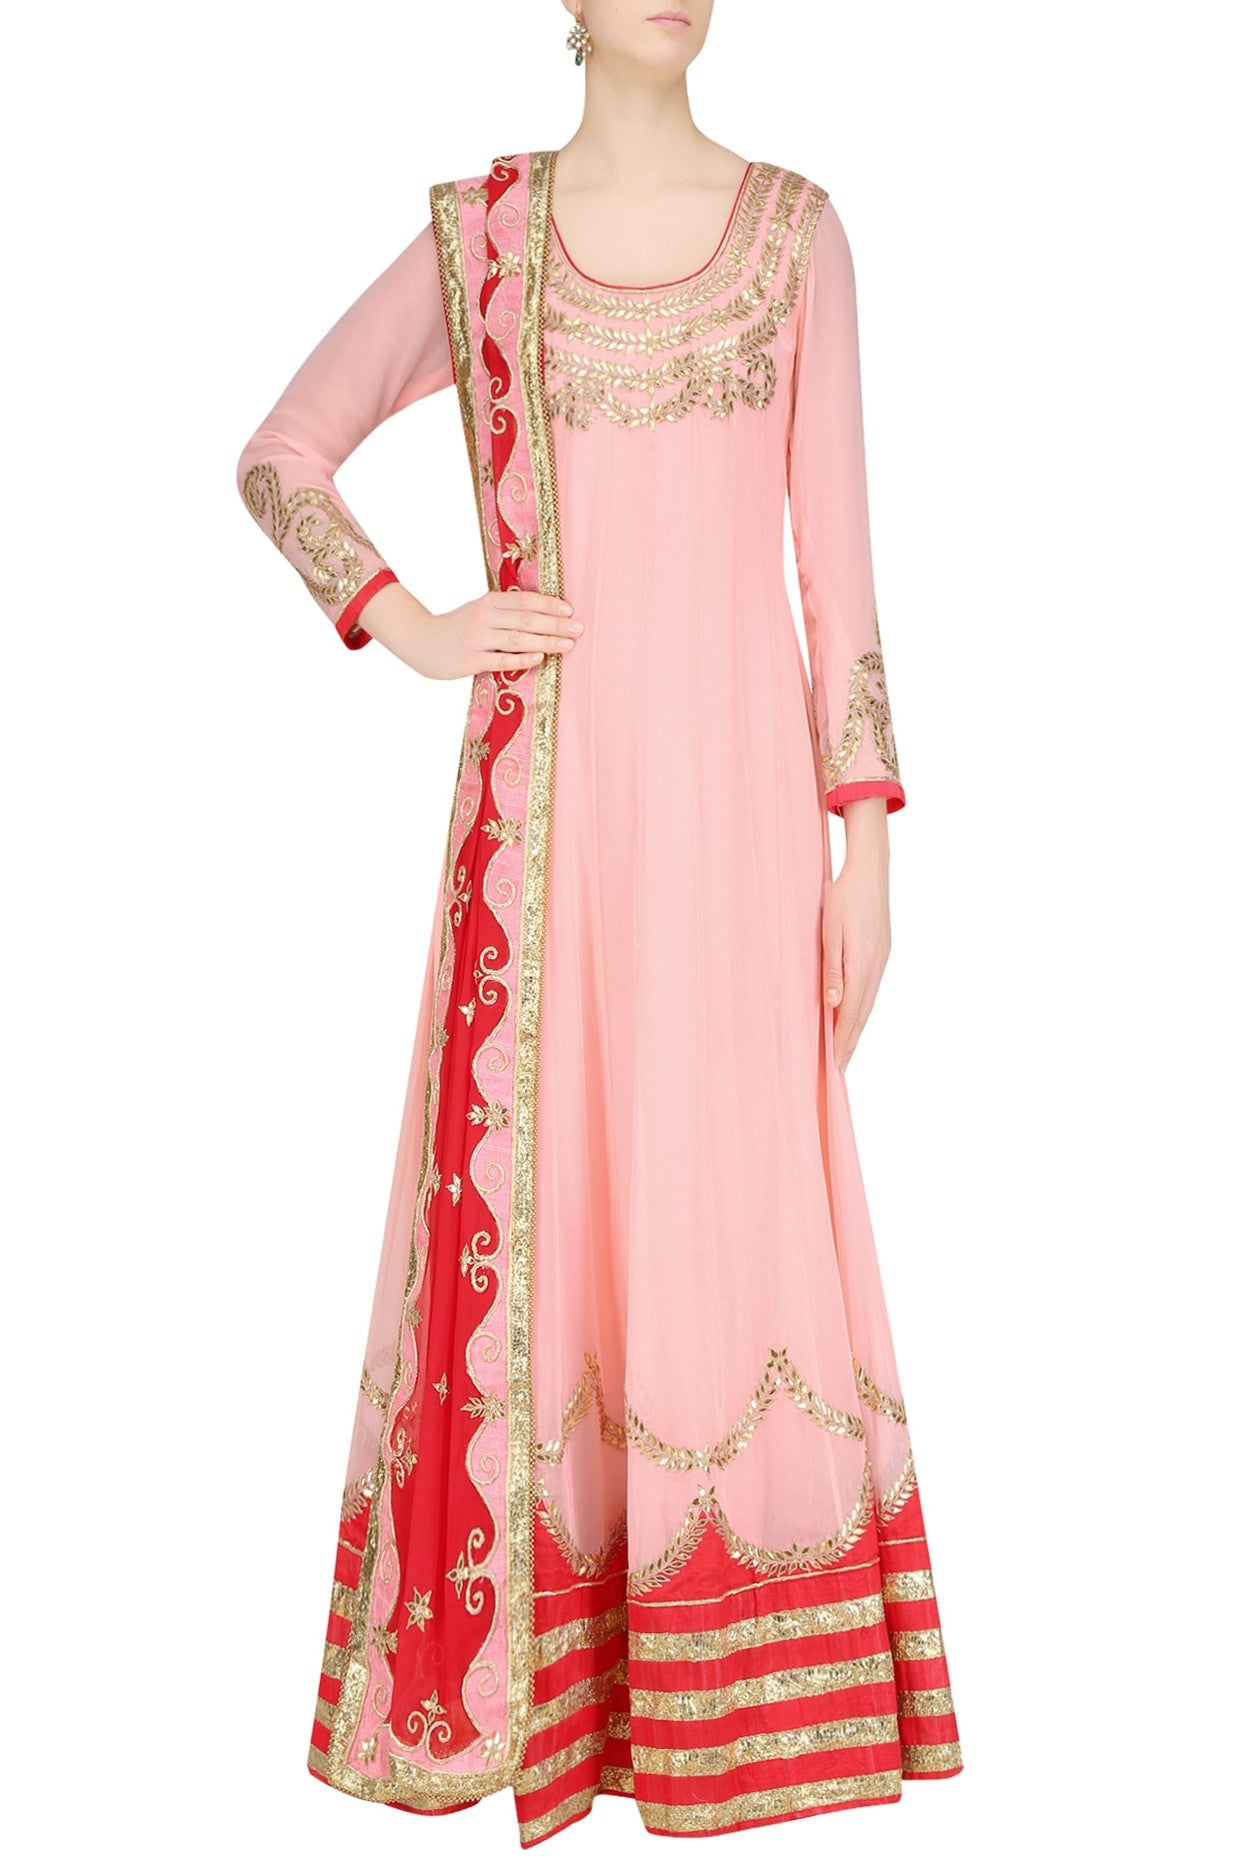 Sweet peach and red floor length kalidar